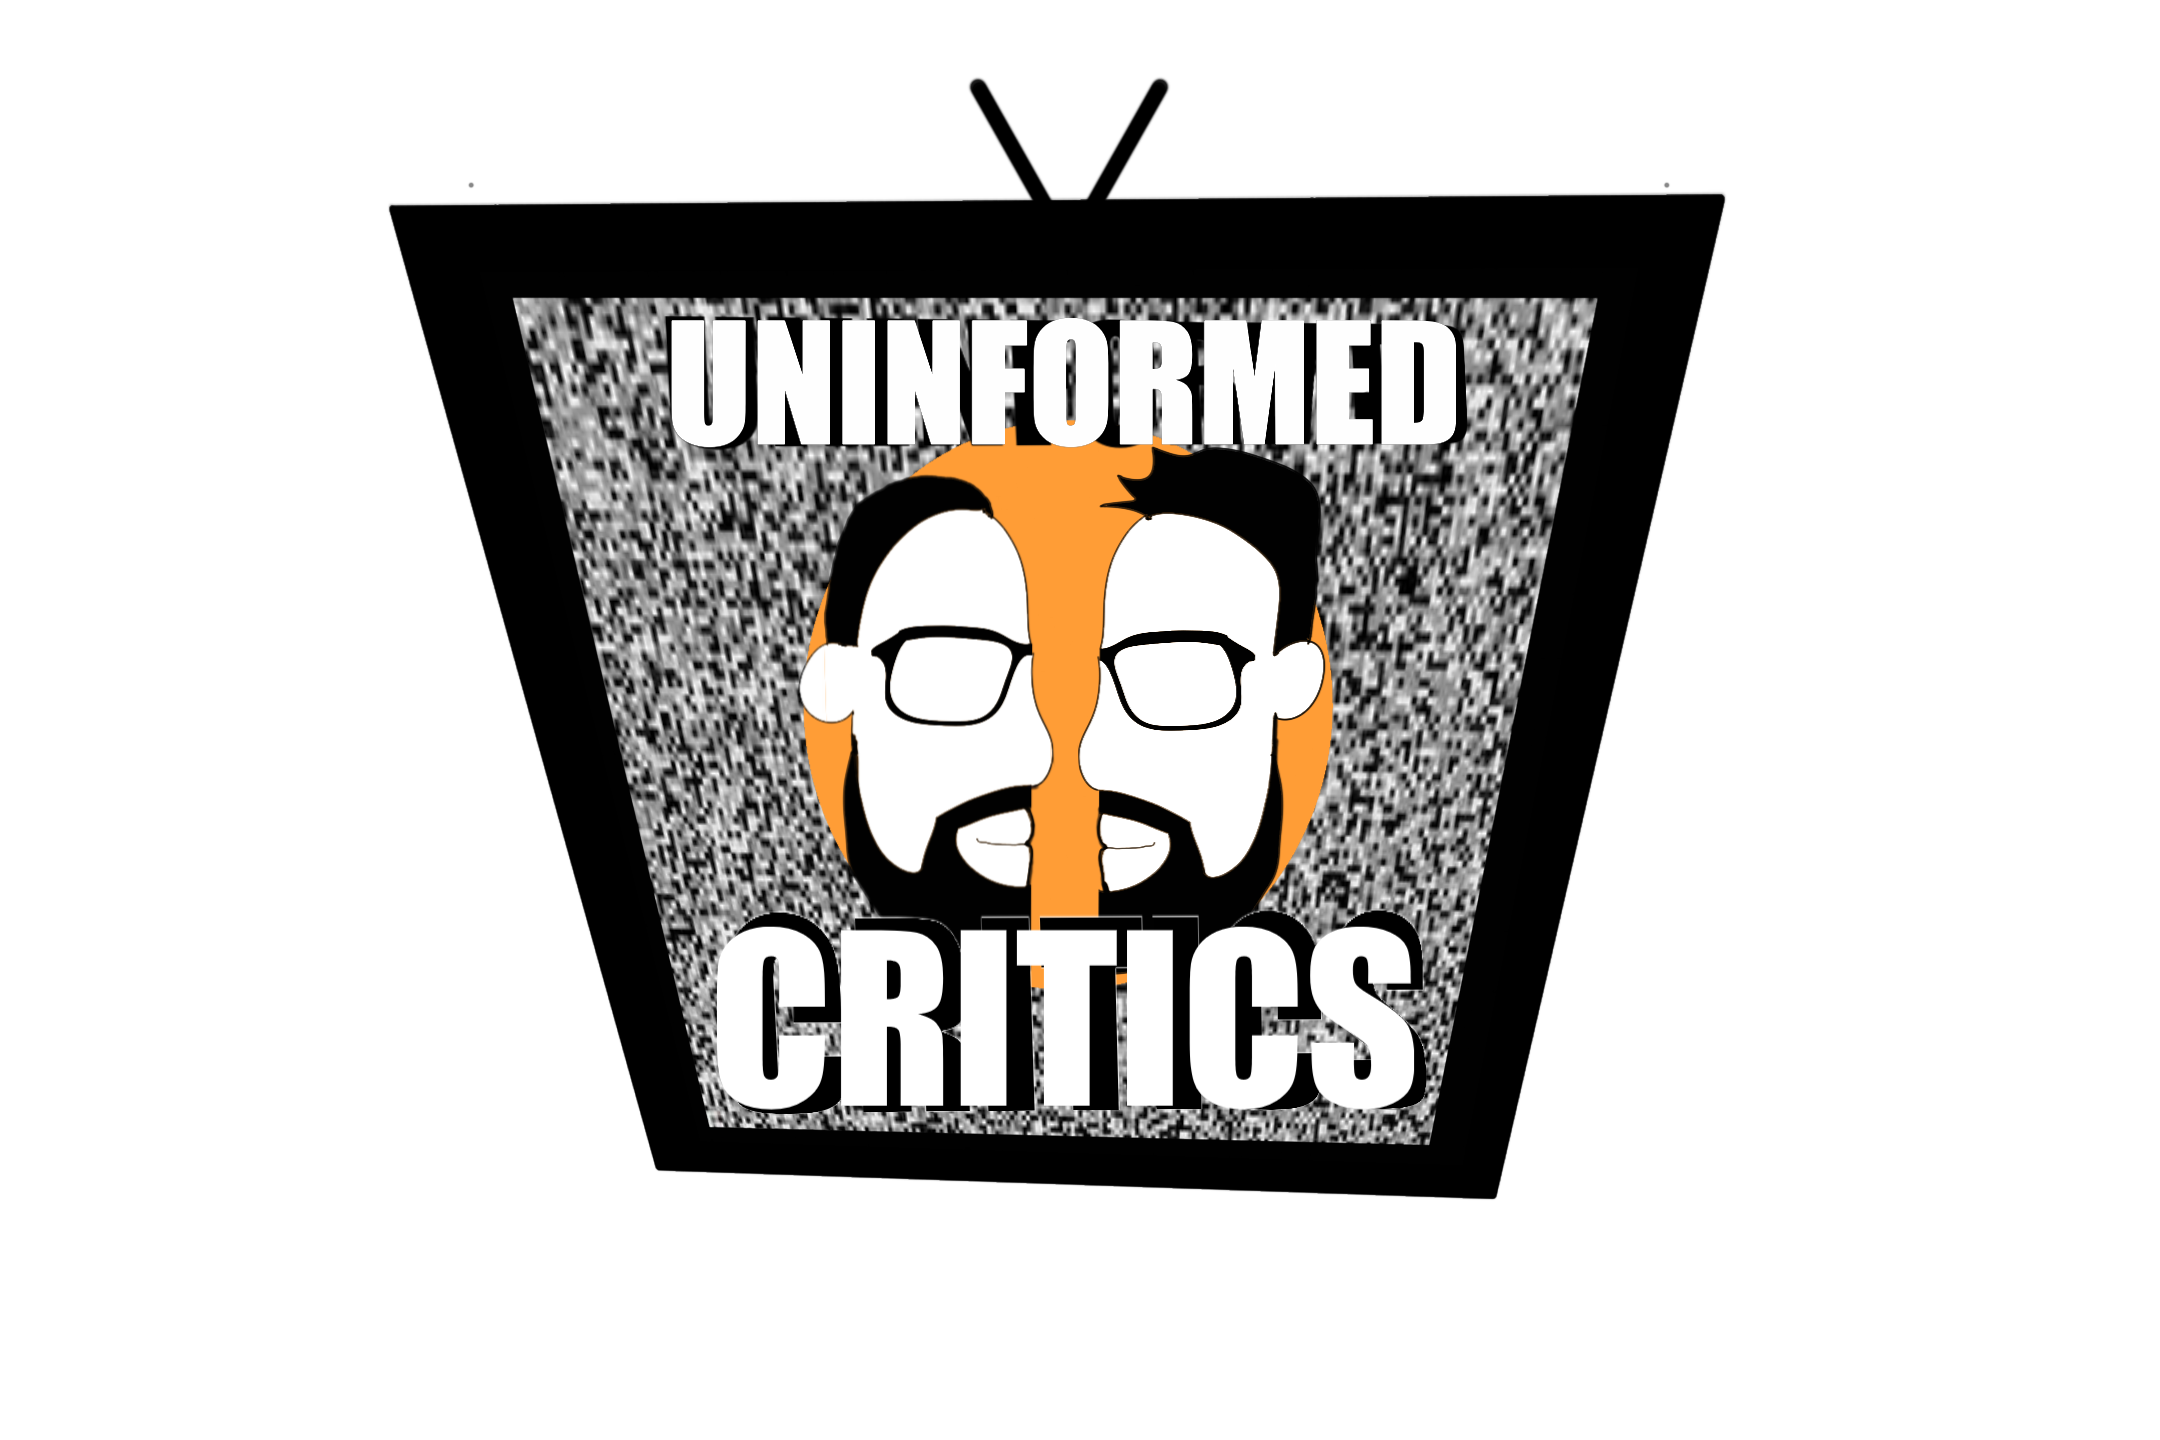 77542bcbc9f Uninformed Critics by Kyle and Thomas Belanger on Apple Podcasts